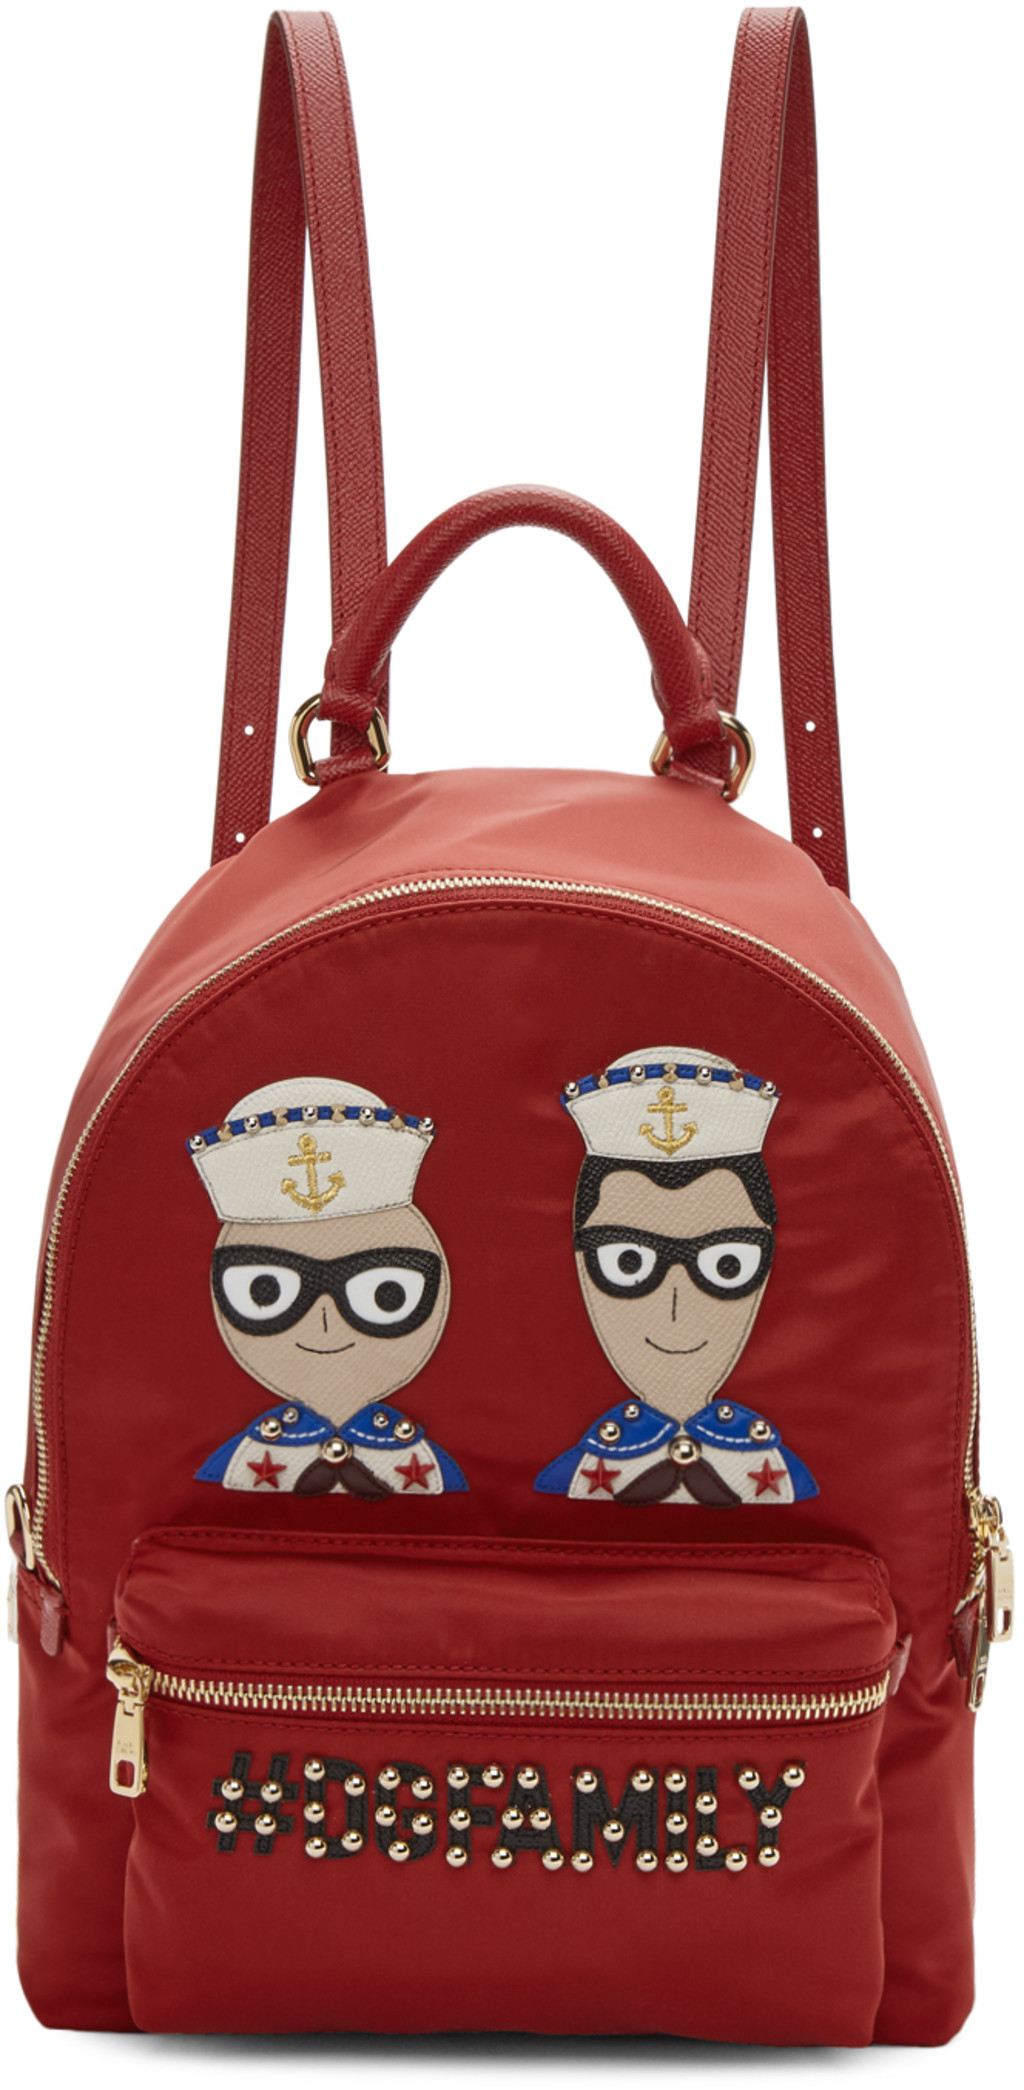 fb477fdf0556 Dolce   Gabbana for Women SS19 Collection